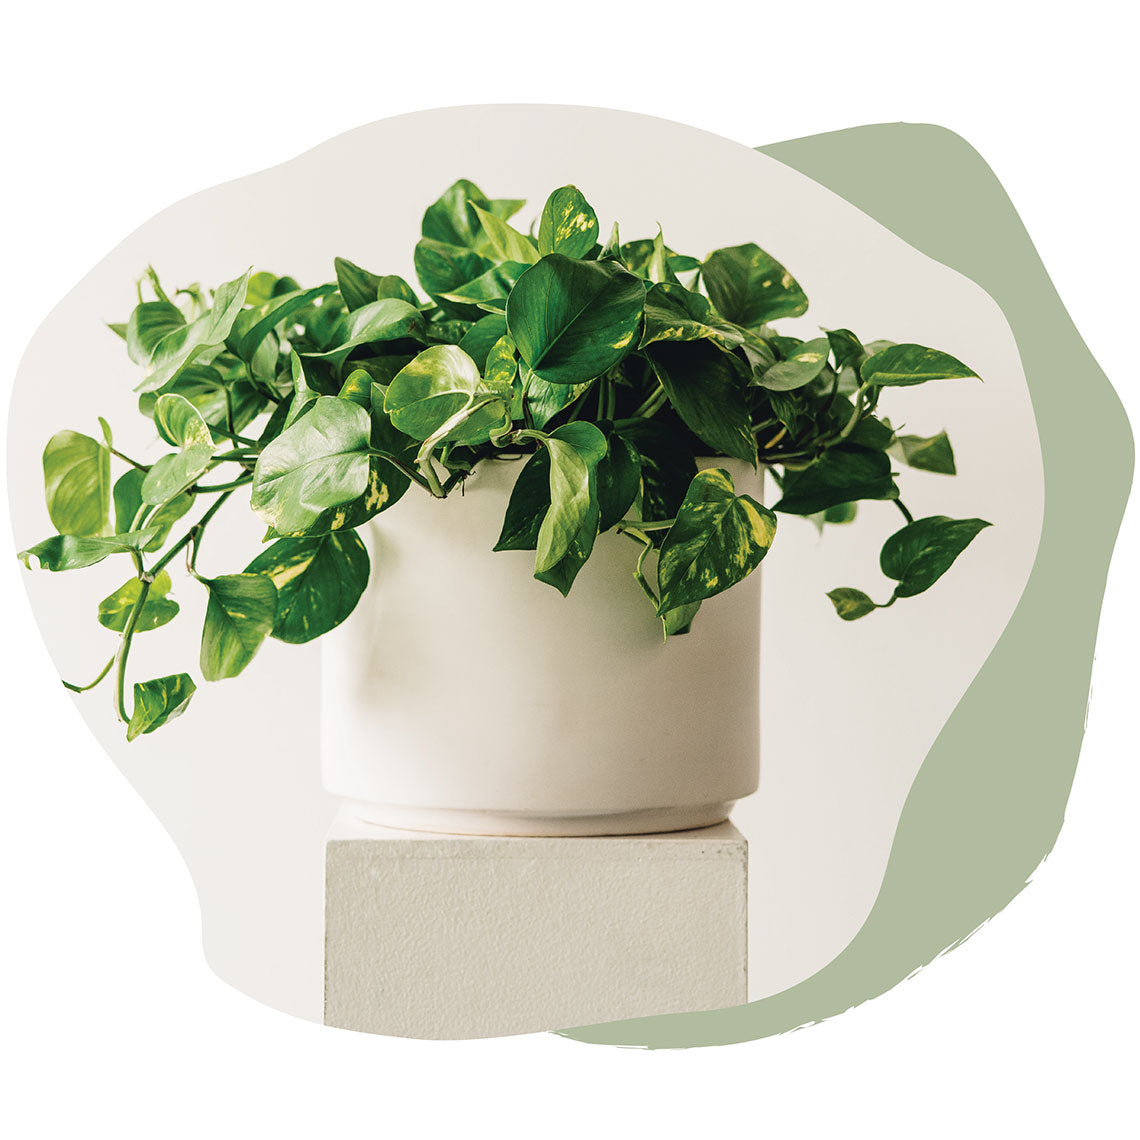 Photo of a pothos plant